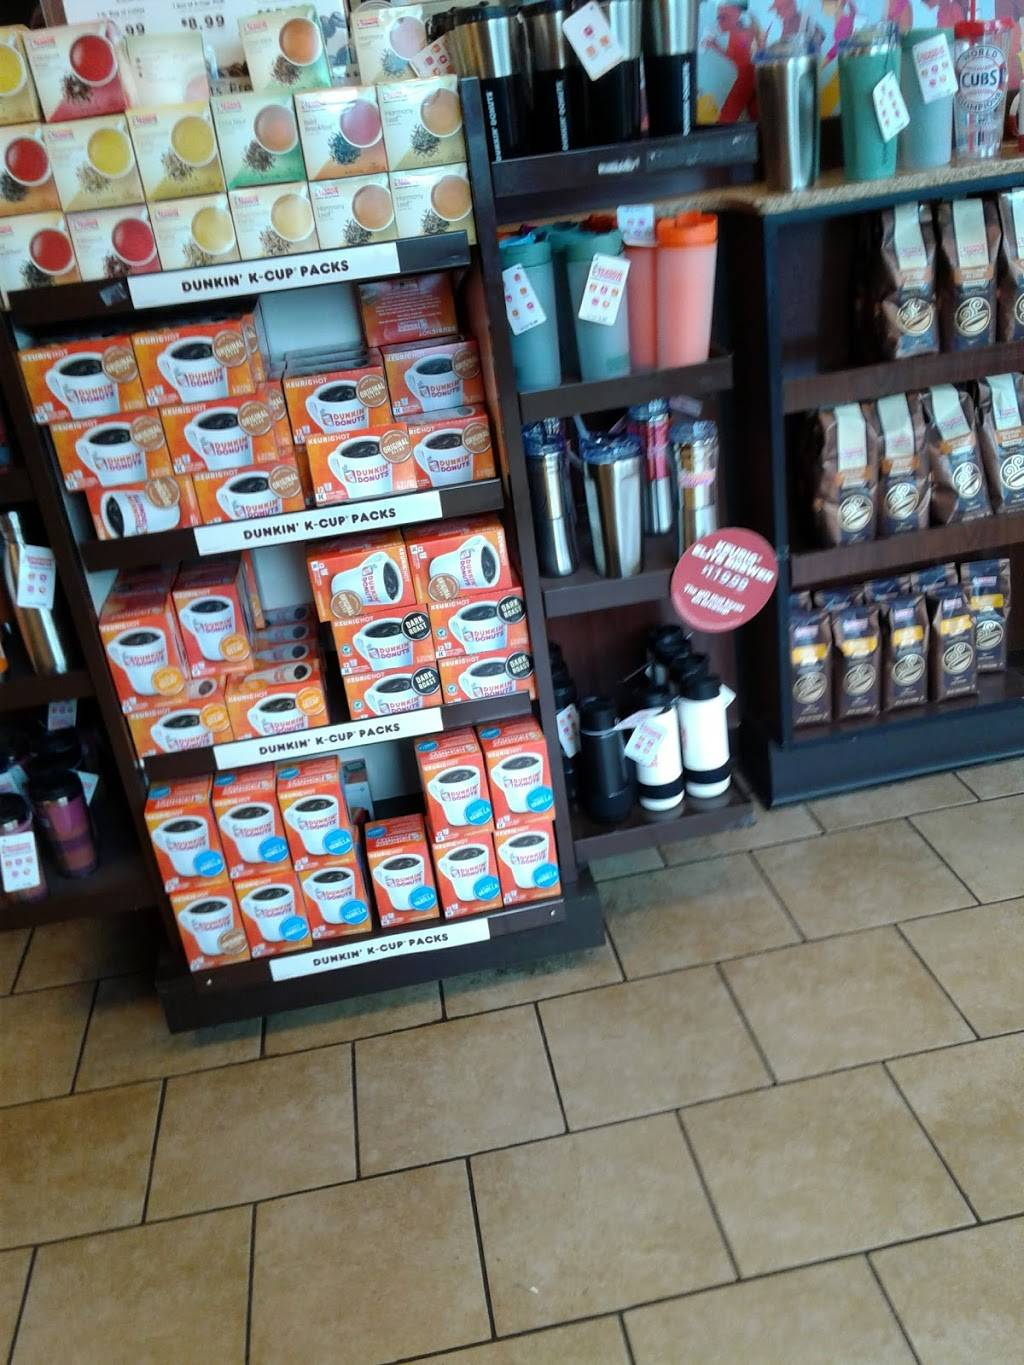 Dunkin Donuts | cafe | 4614 Calumet Ave, Hammond, IN 46327, USA | 2199315060 OR +1 219-931-5060